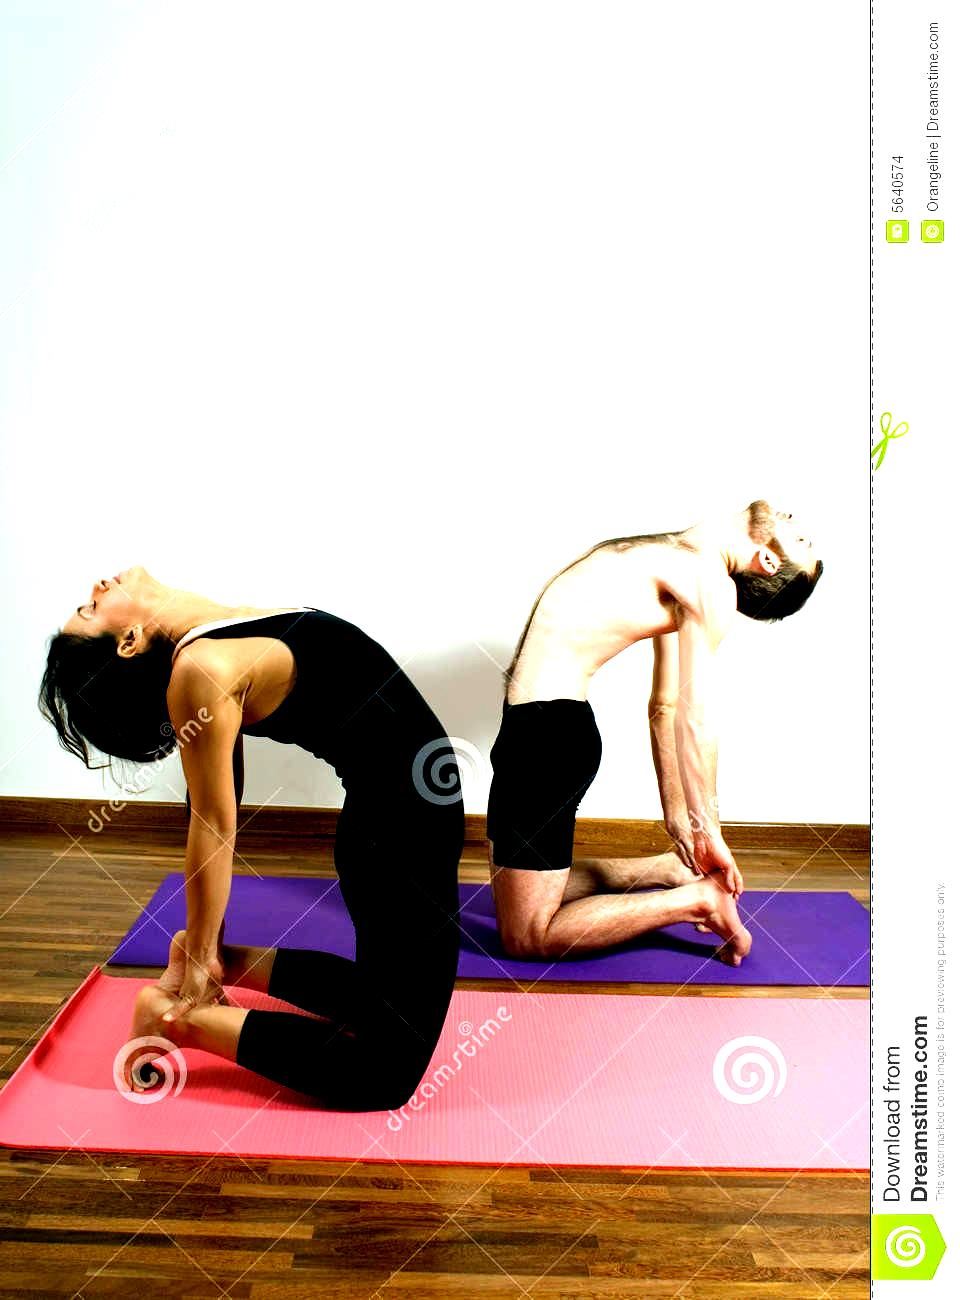 Yoga Poses For Two People - Work Out Picture Media - Work ...